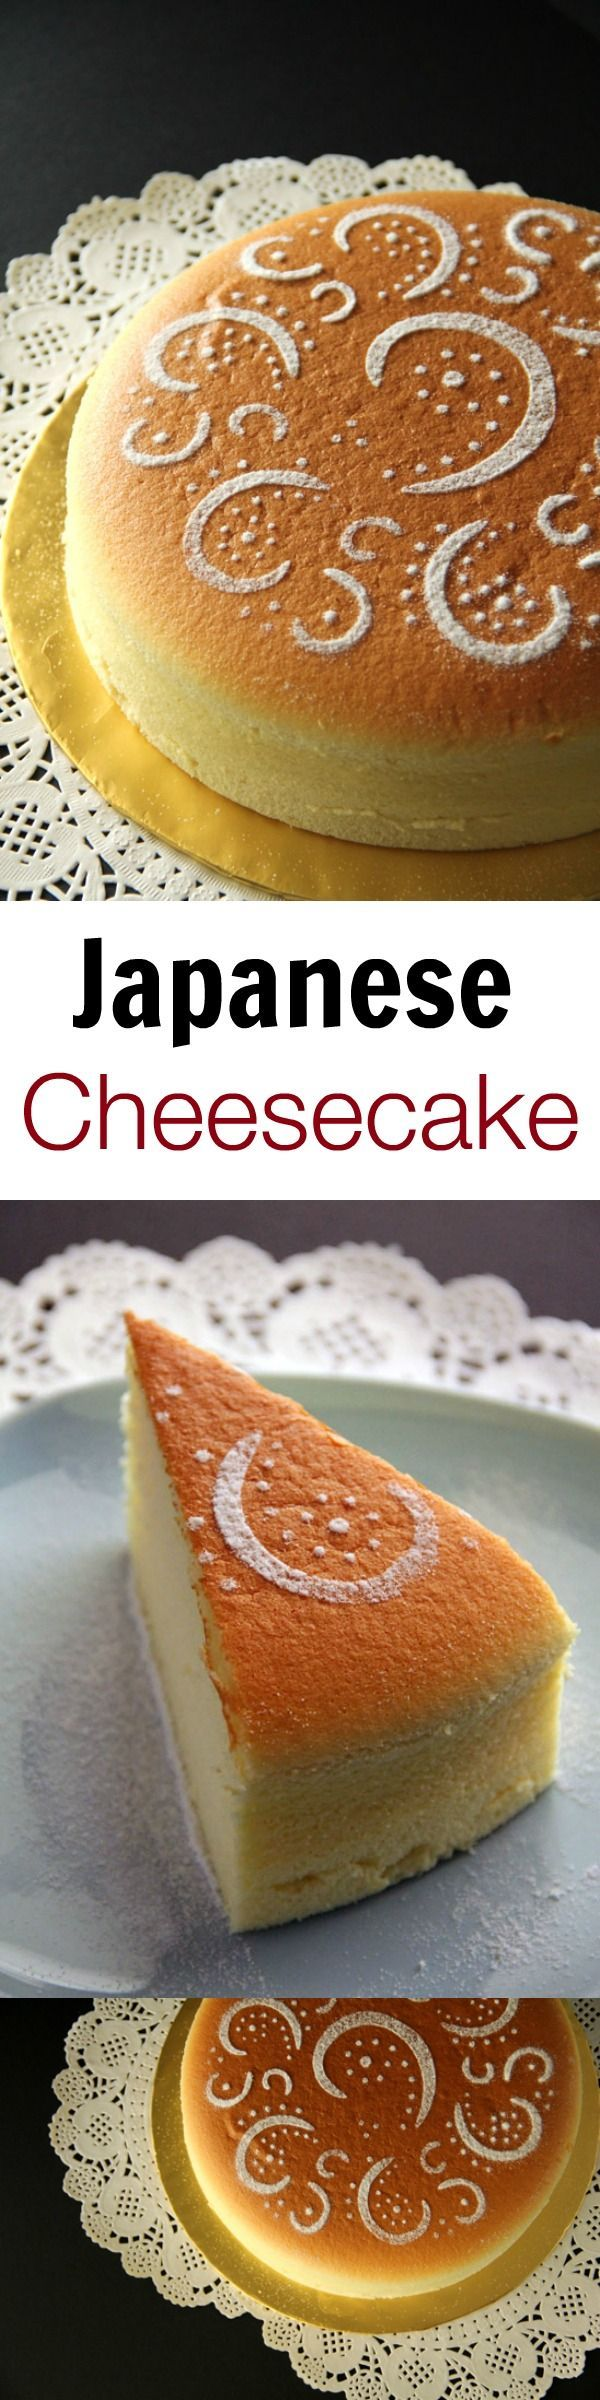 Japanese cheesecake – cotton soft, light, pillowy, the BEST cheesecake recipe EVER. Tried and tested, a MUST-BAKE for cheesecake lover!! | rasamalaysia.com